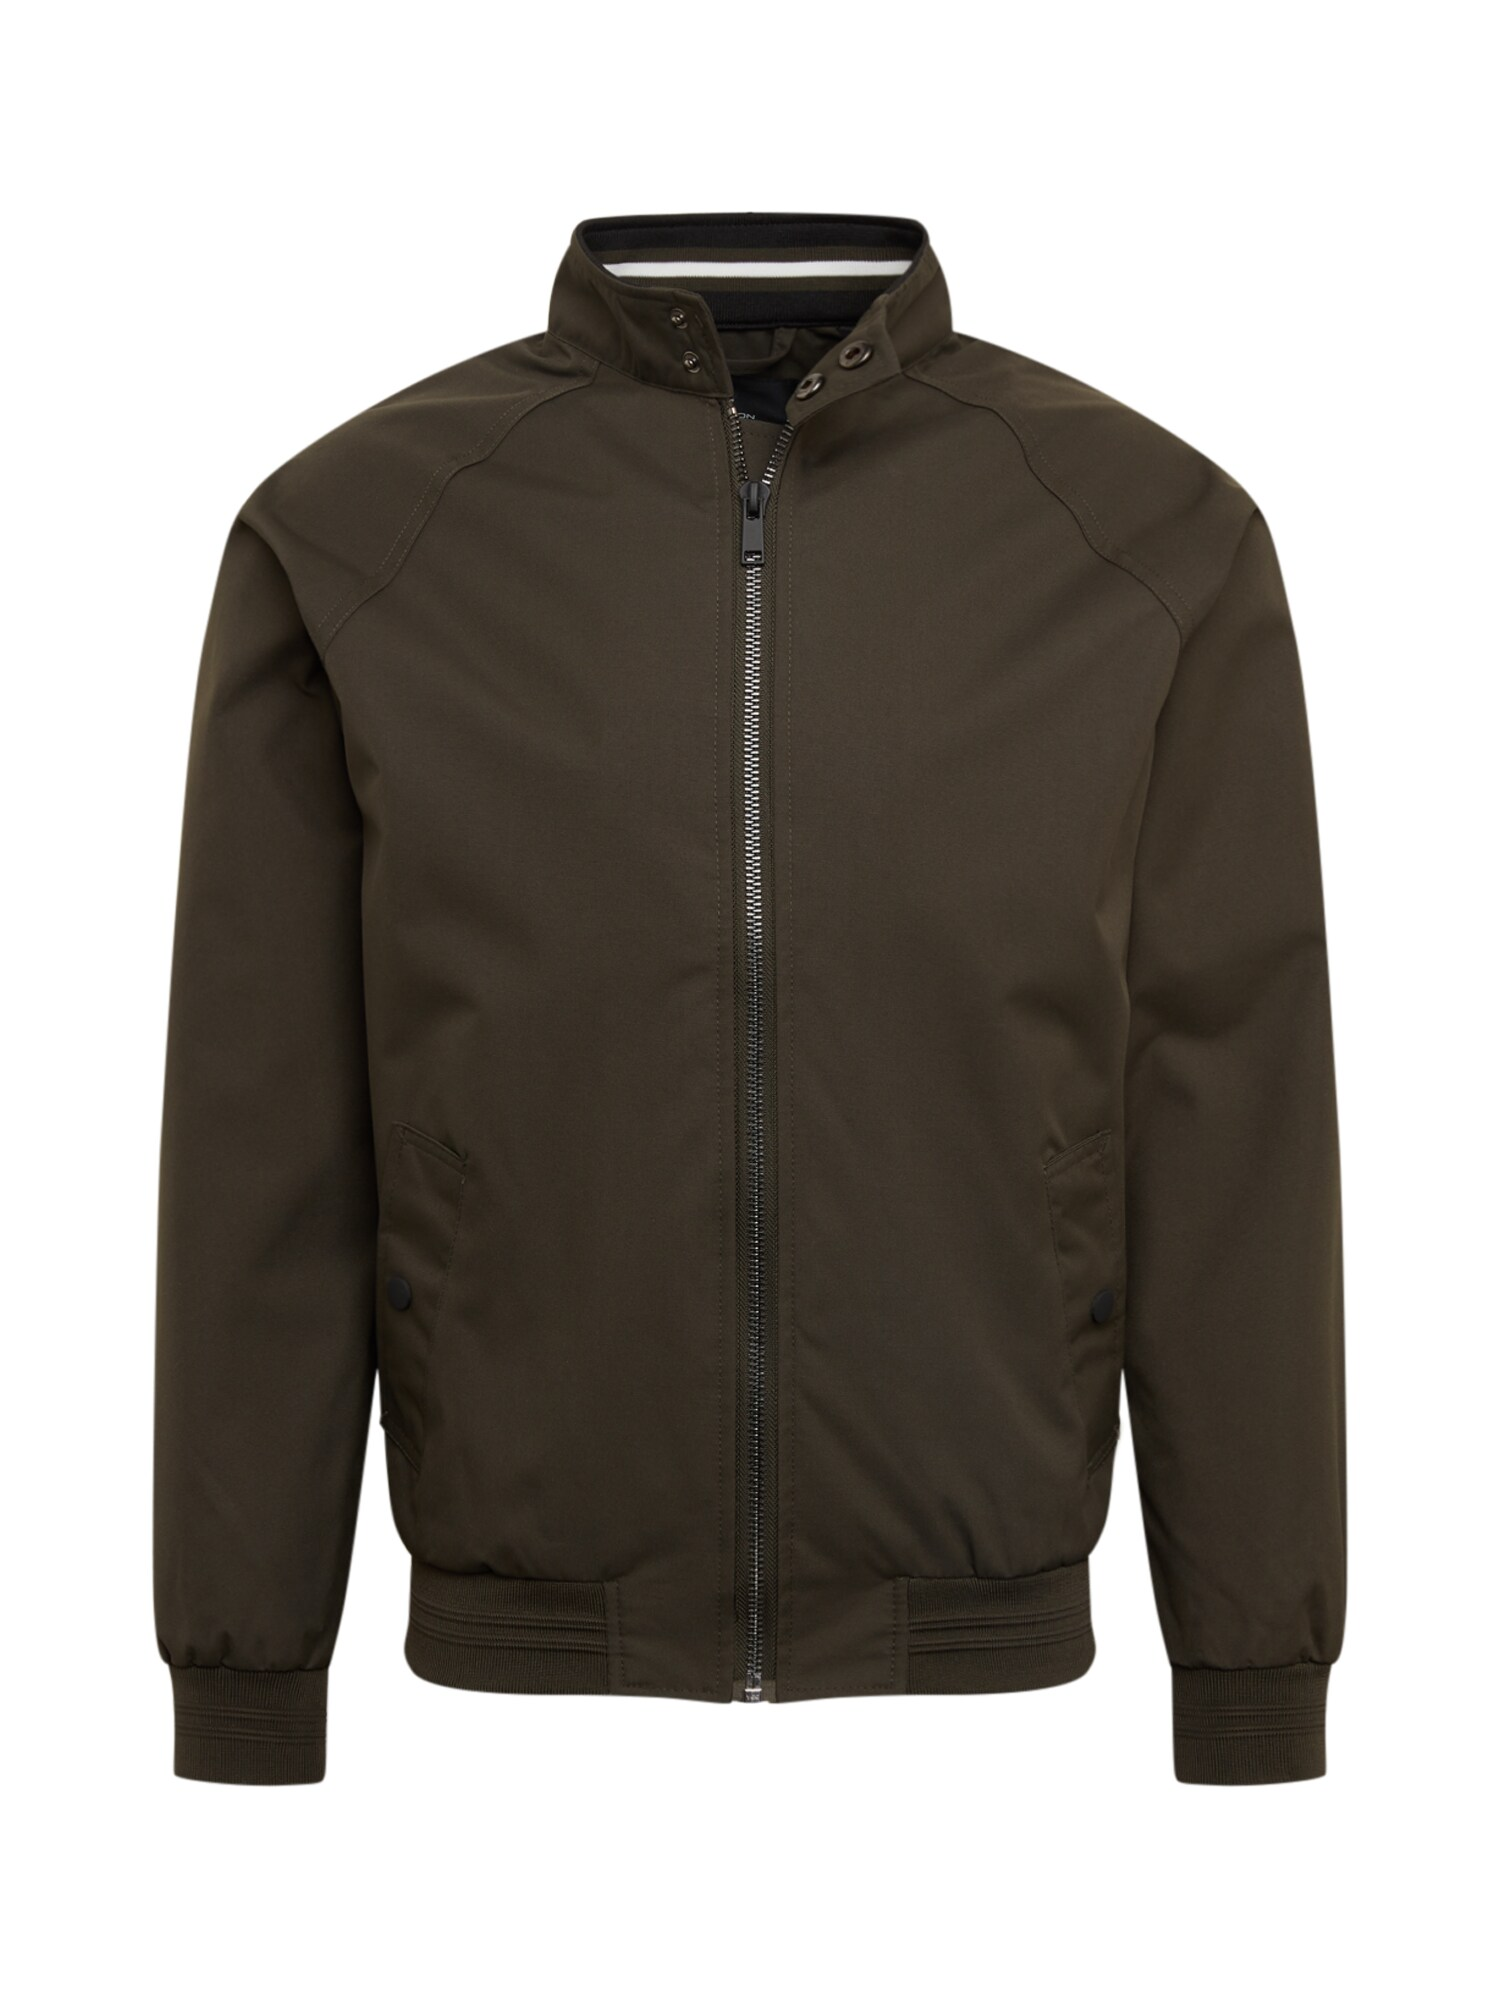 BURTON MENSWEAR LONDON Přechodná bunda S20 KHK CORE HARRING khaki Burton Menswear London